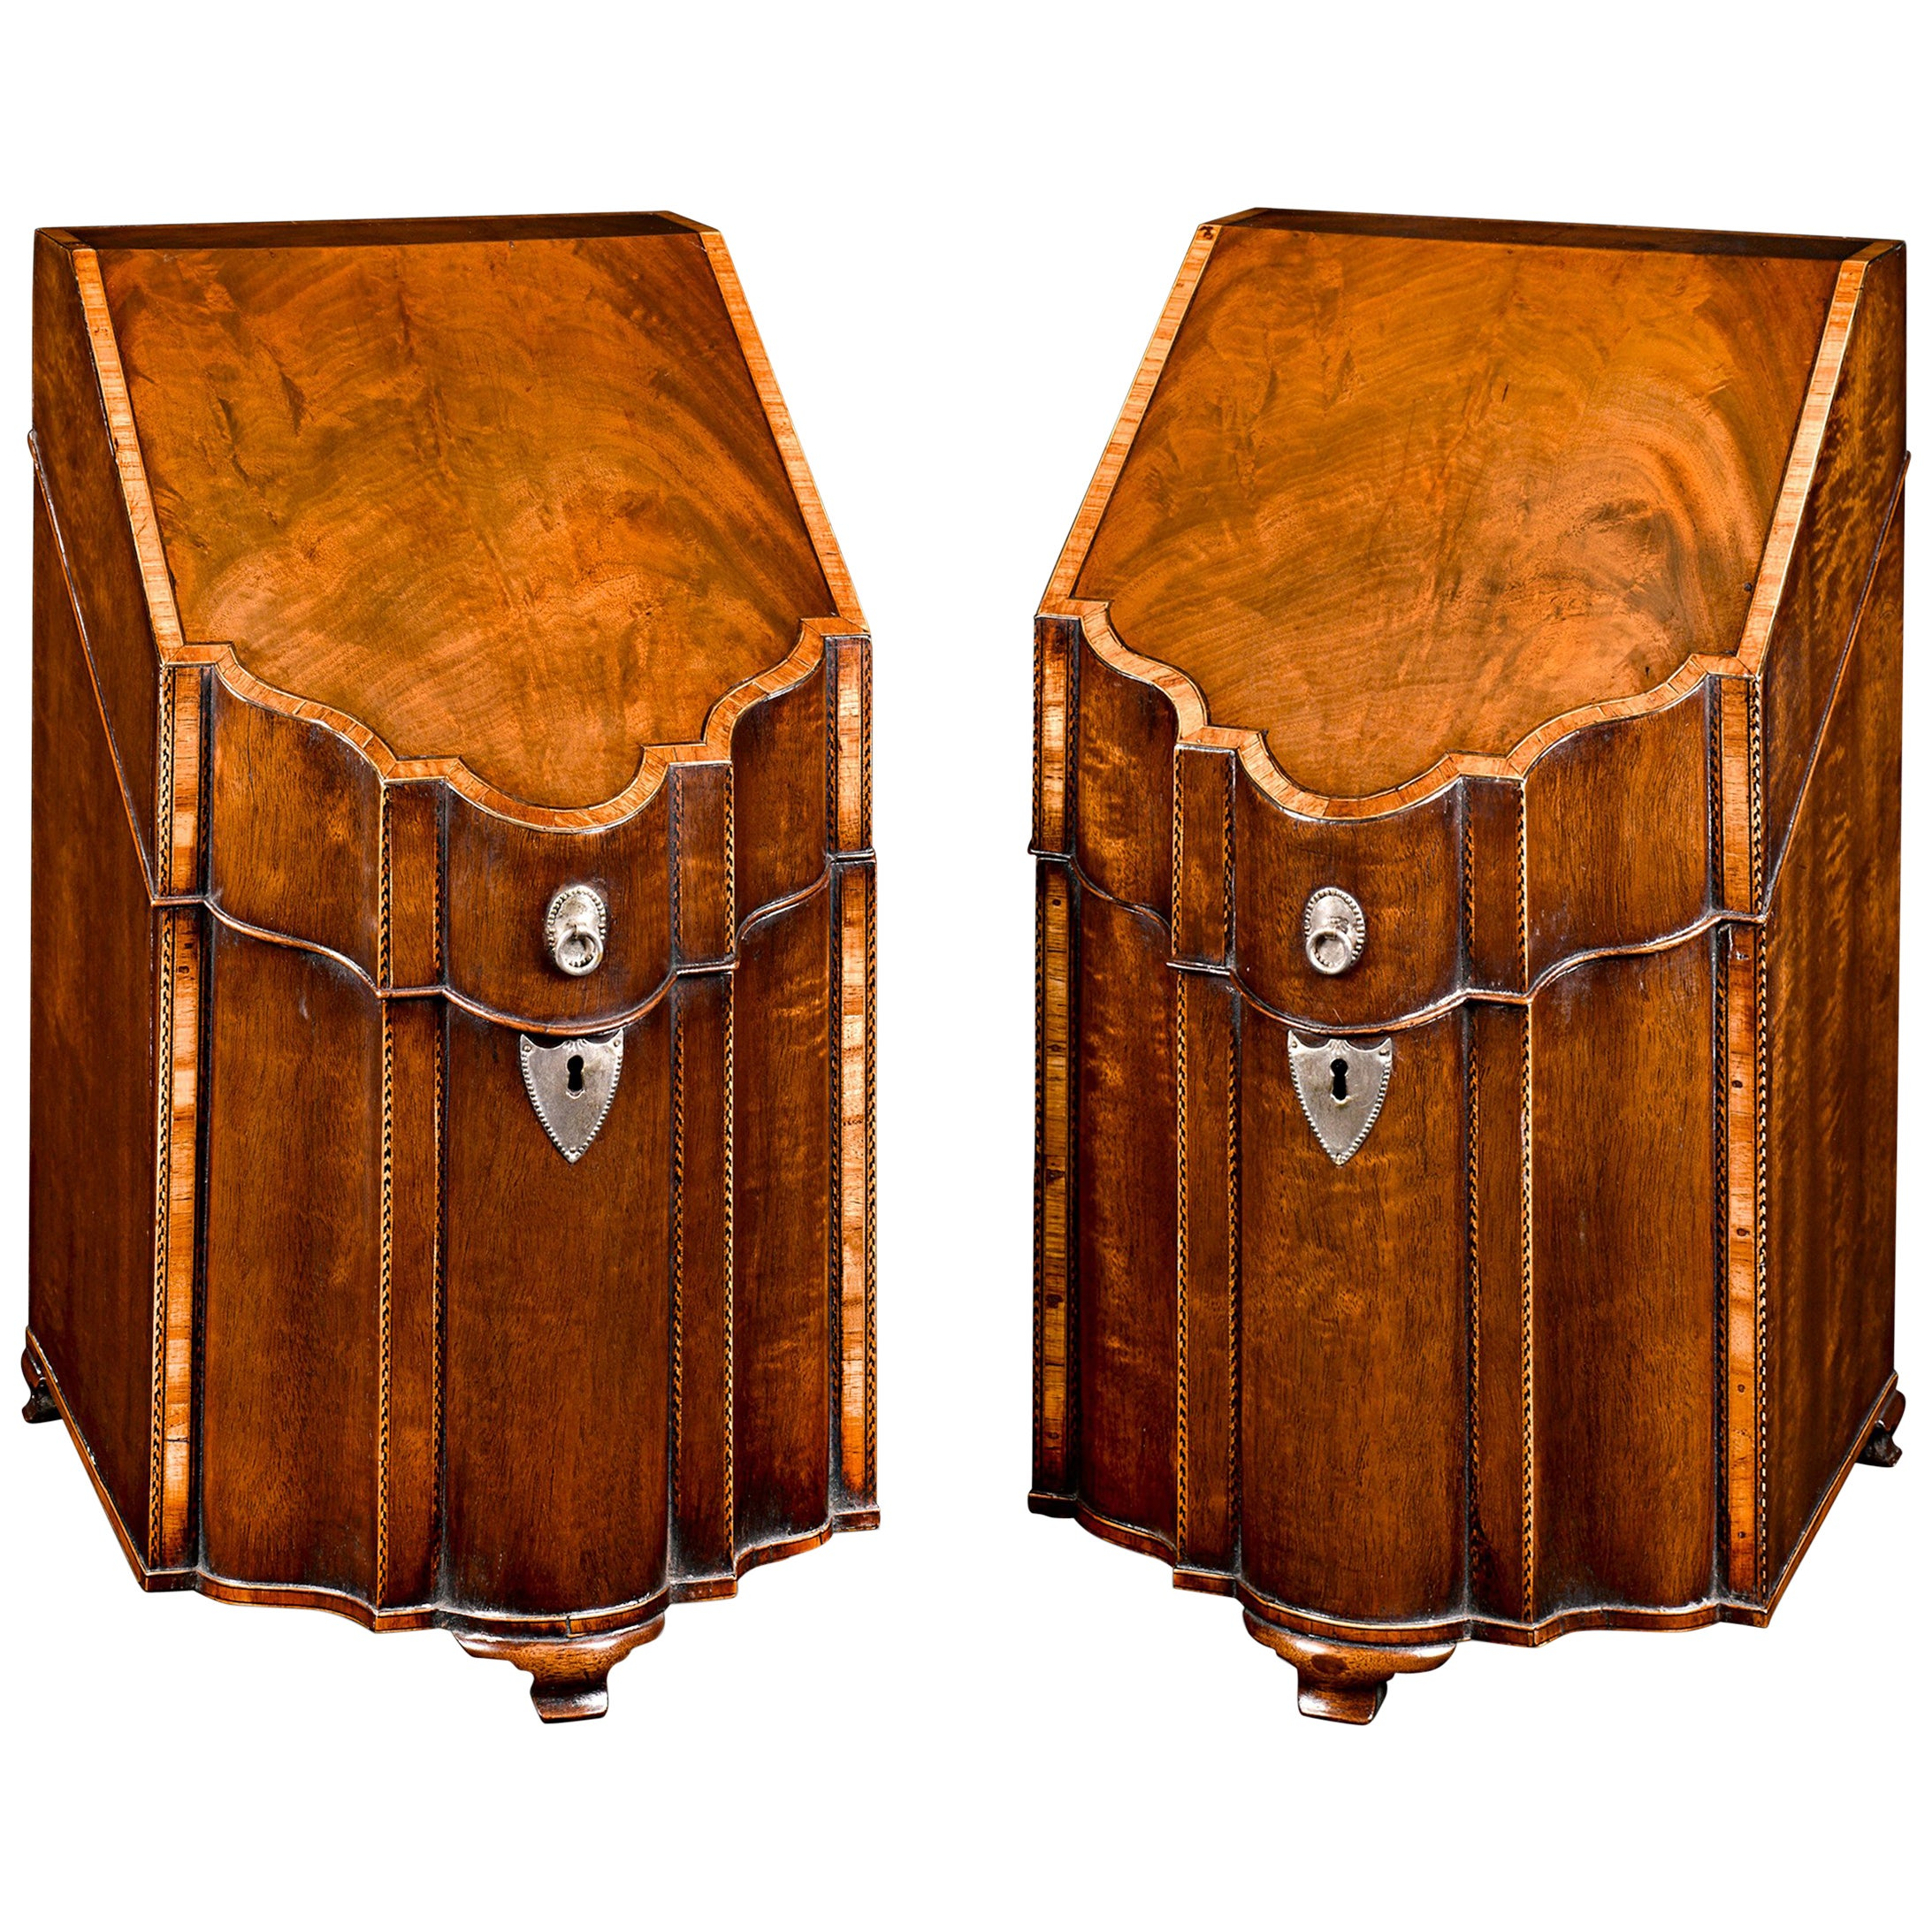 18th Century George III Mahogany Footed Knife Boxes